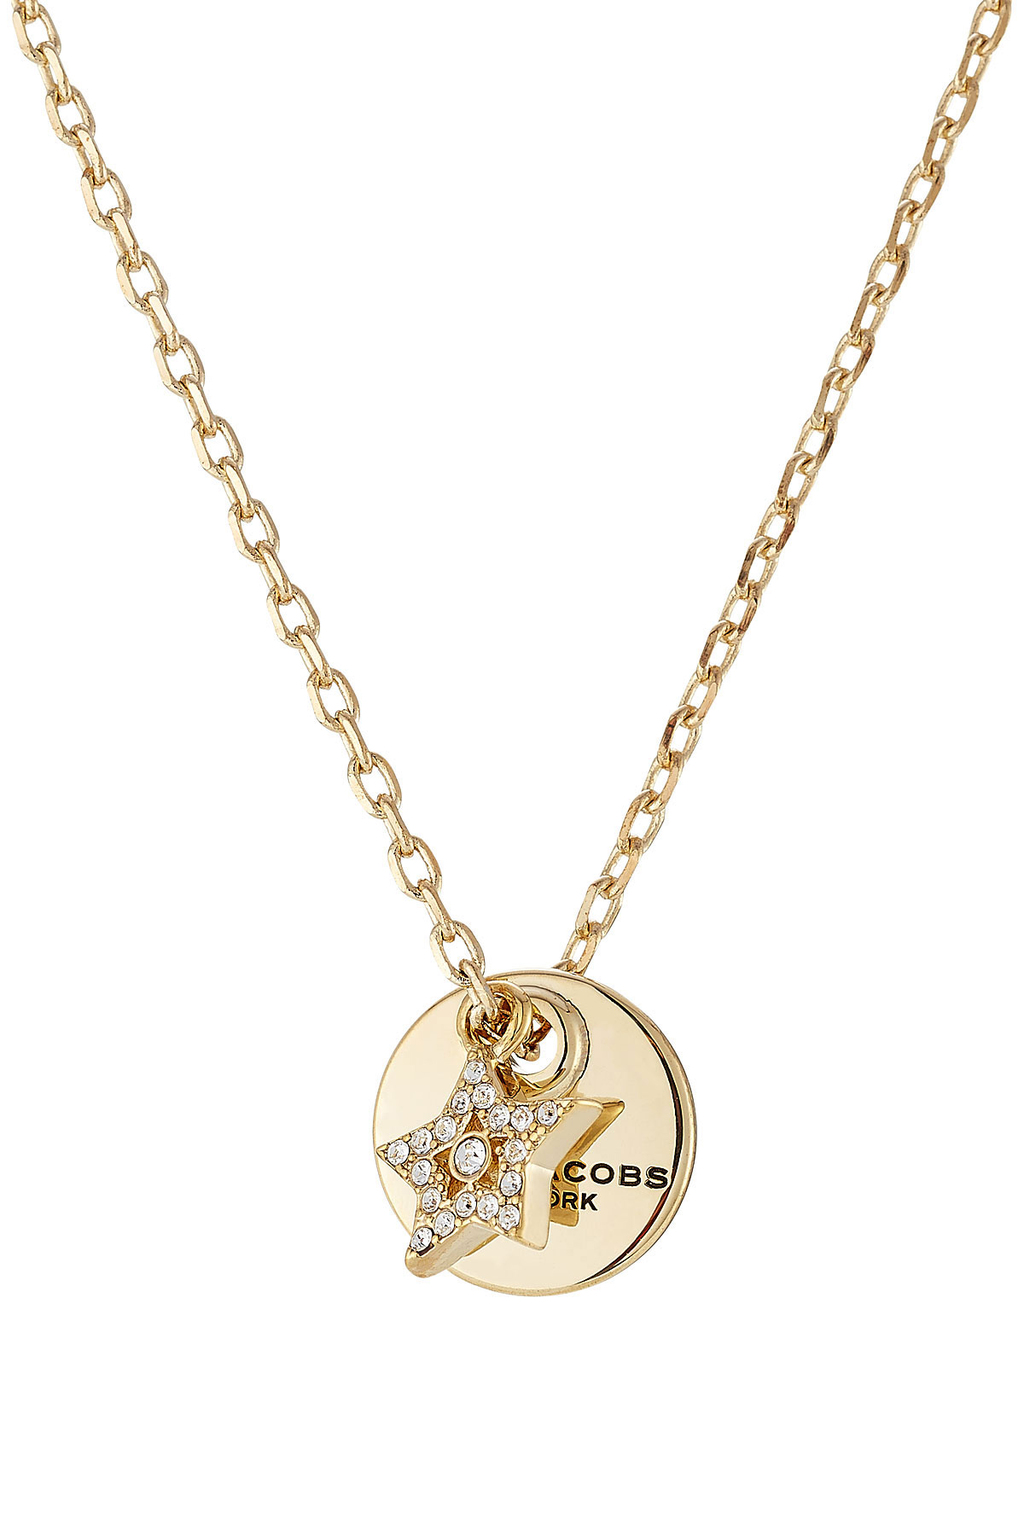 Mj Coin Embellished Necklace - predominant colour: gold; occasions: evening; style: pendant; length: mid; size: standard; material: chain/metal; finish: metallic; embellishment: crystals/glass; season: a/w 2016; wardrobe: event